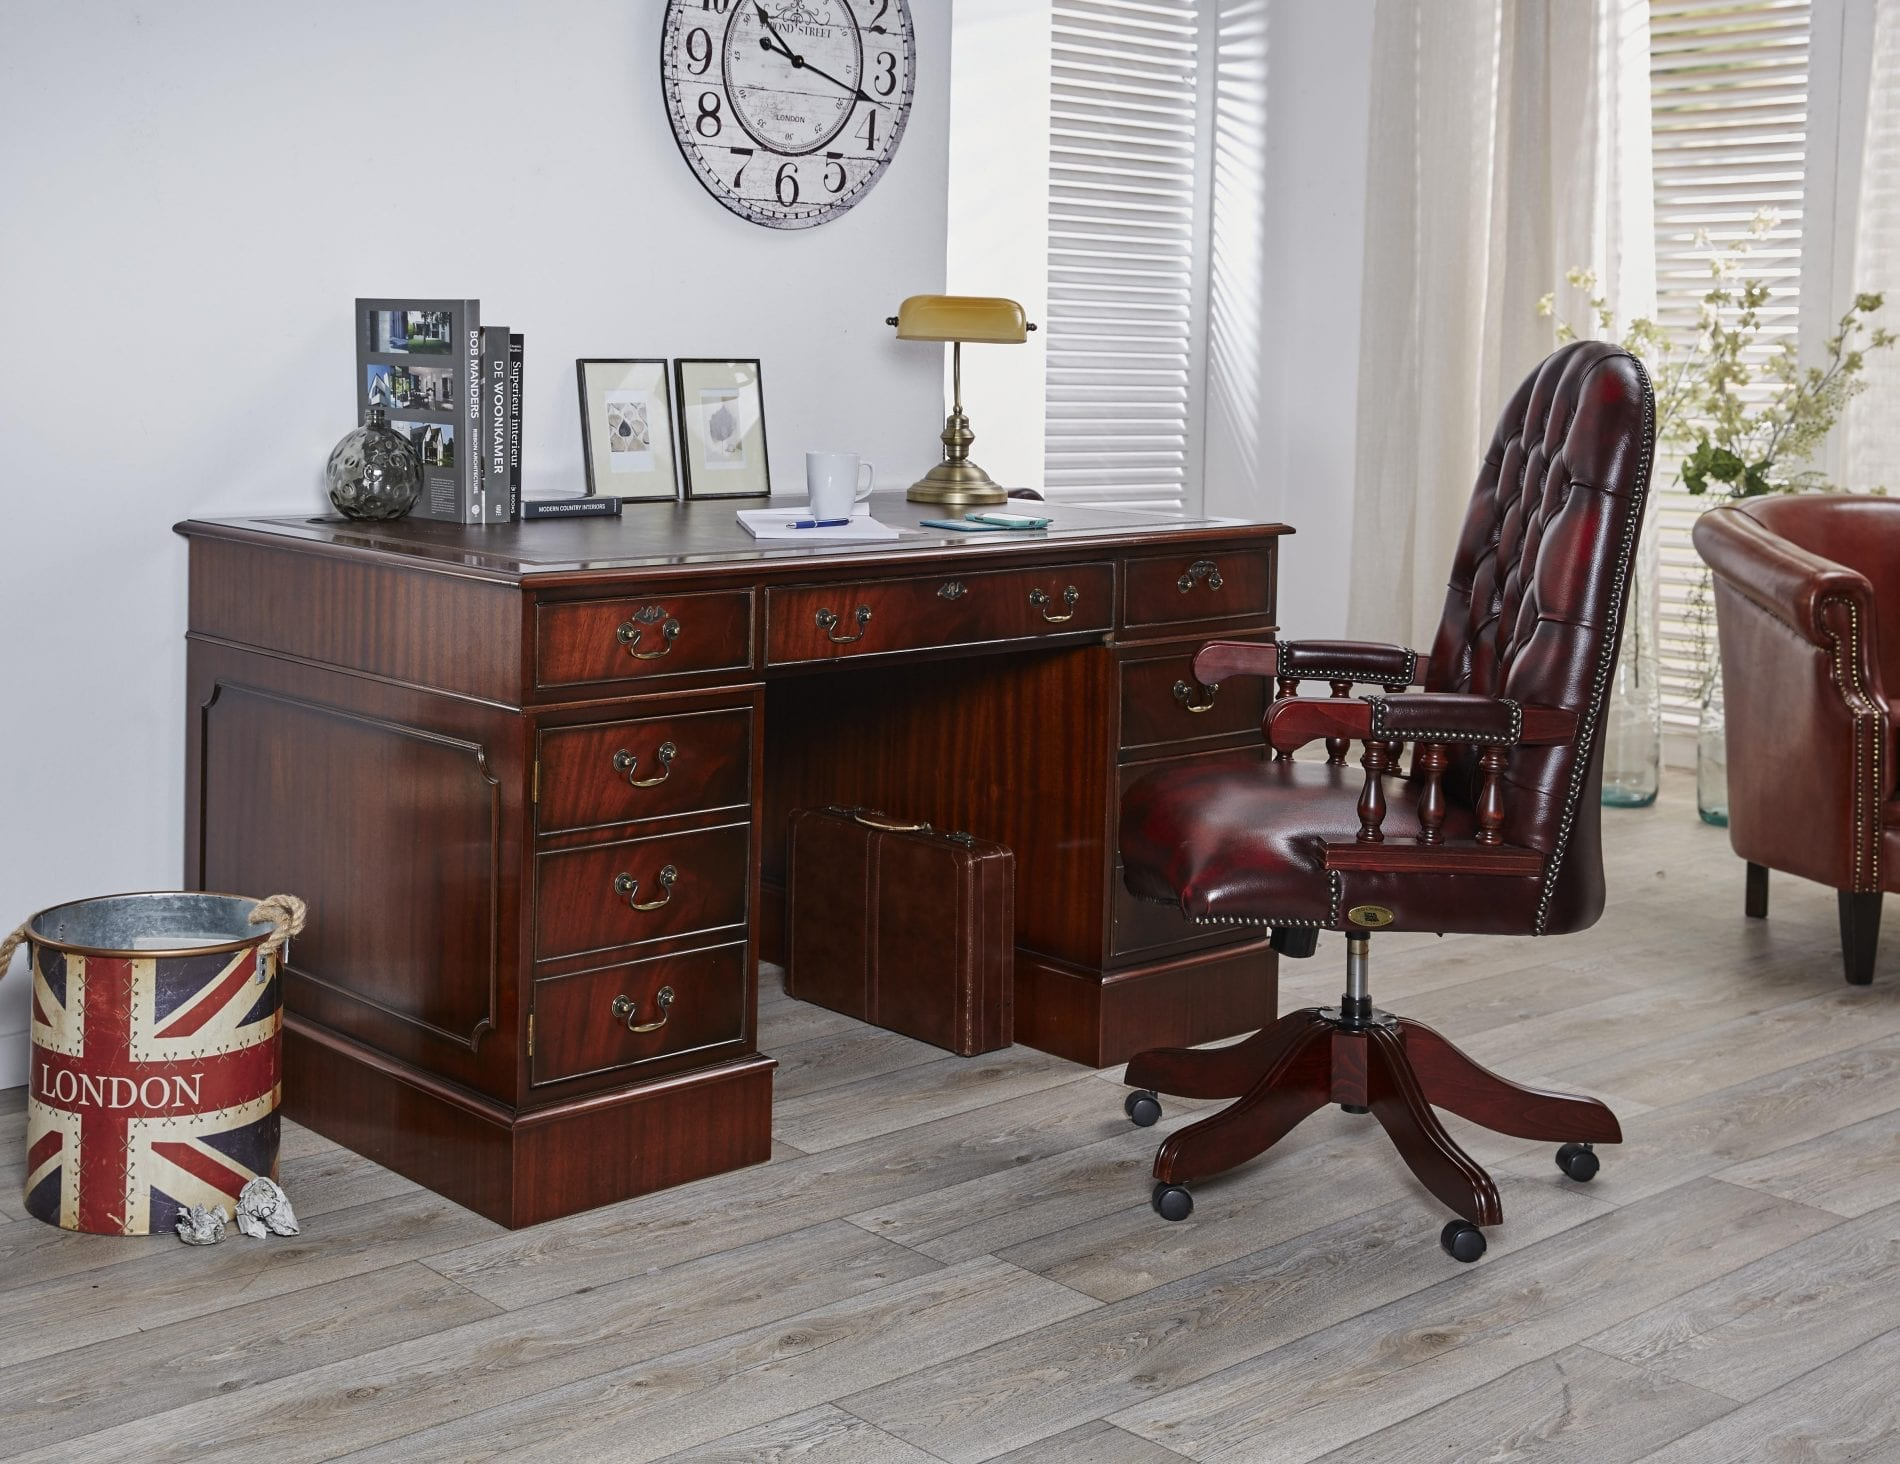 delta-chesterfield-bureau-en-mountbatton-swivel-bureaustoel